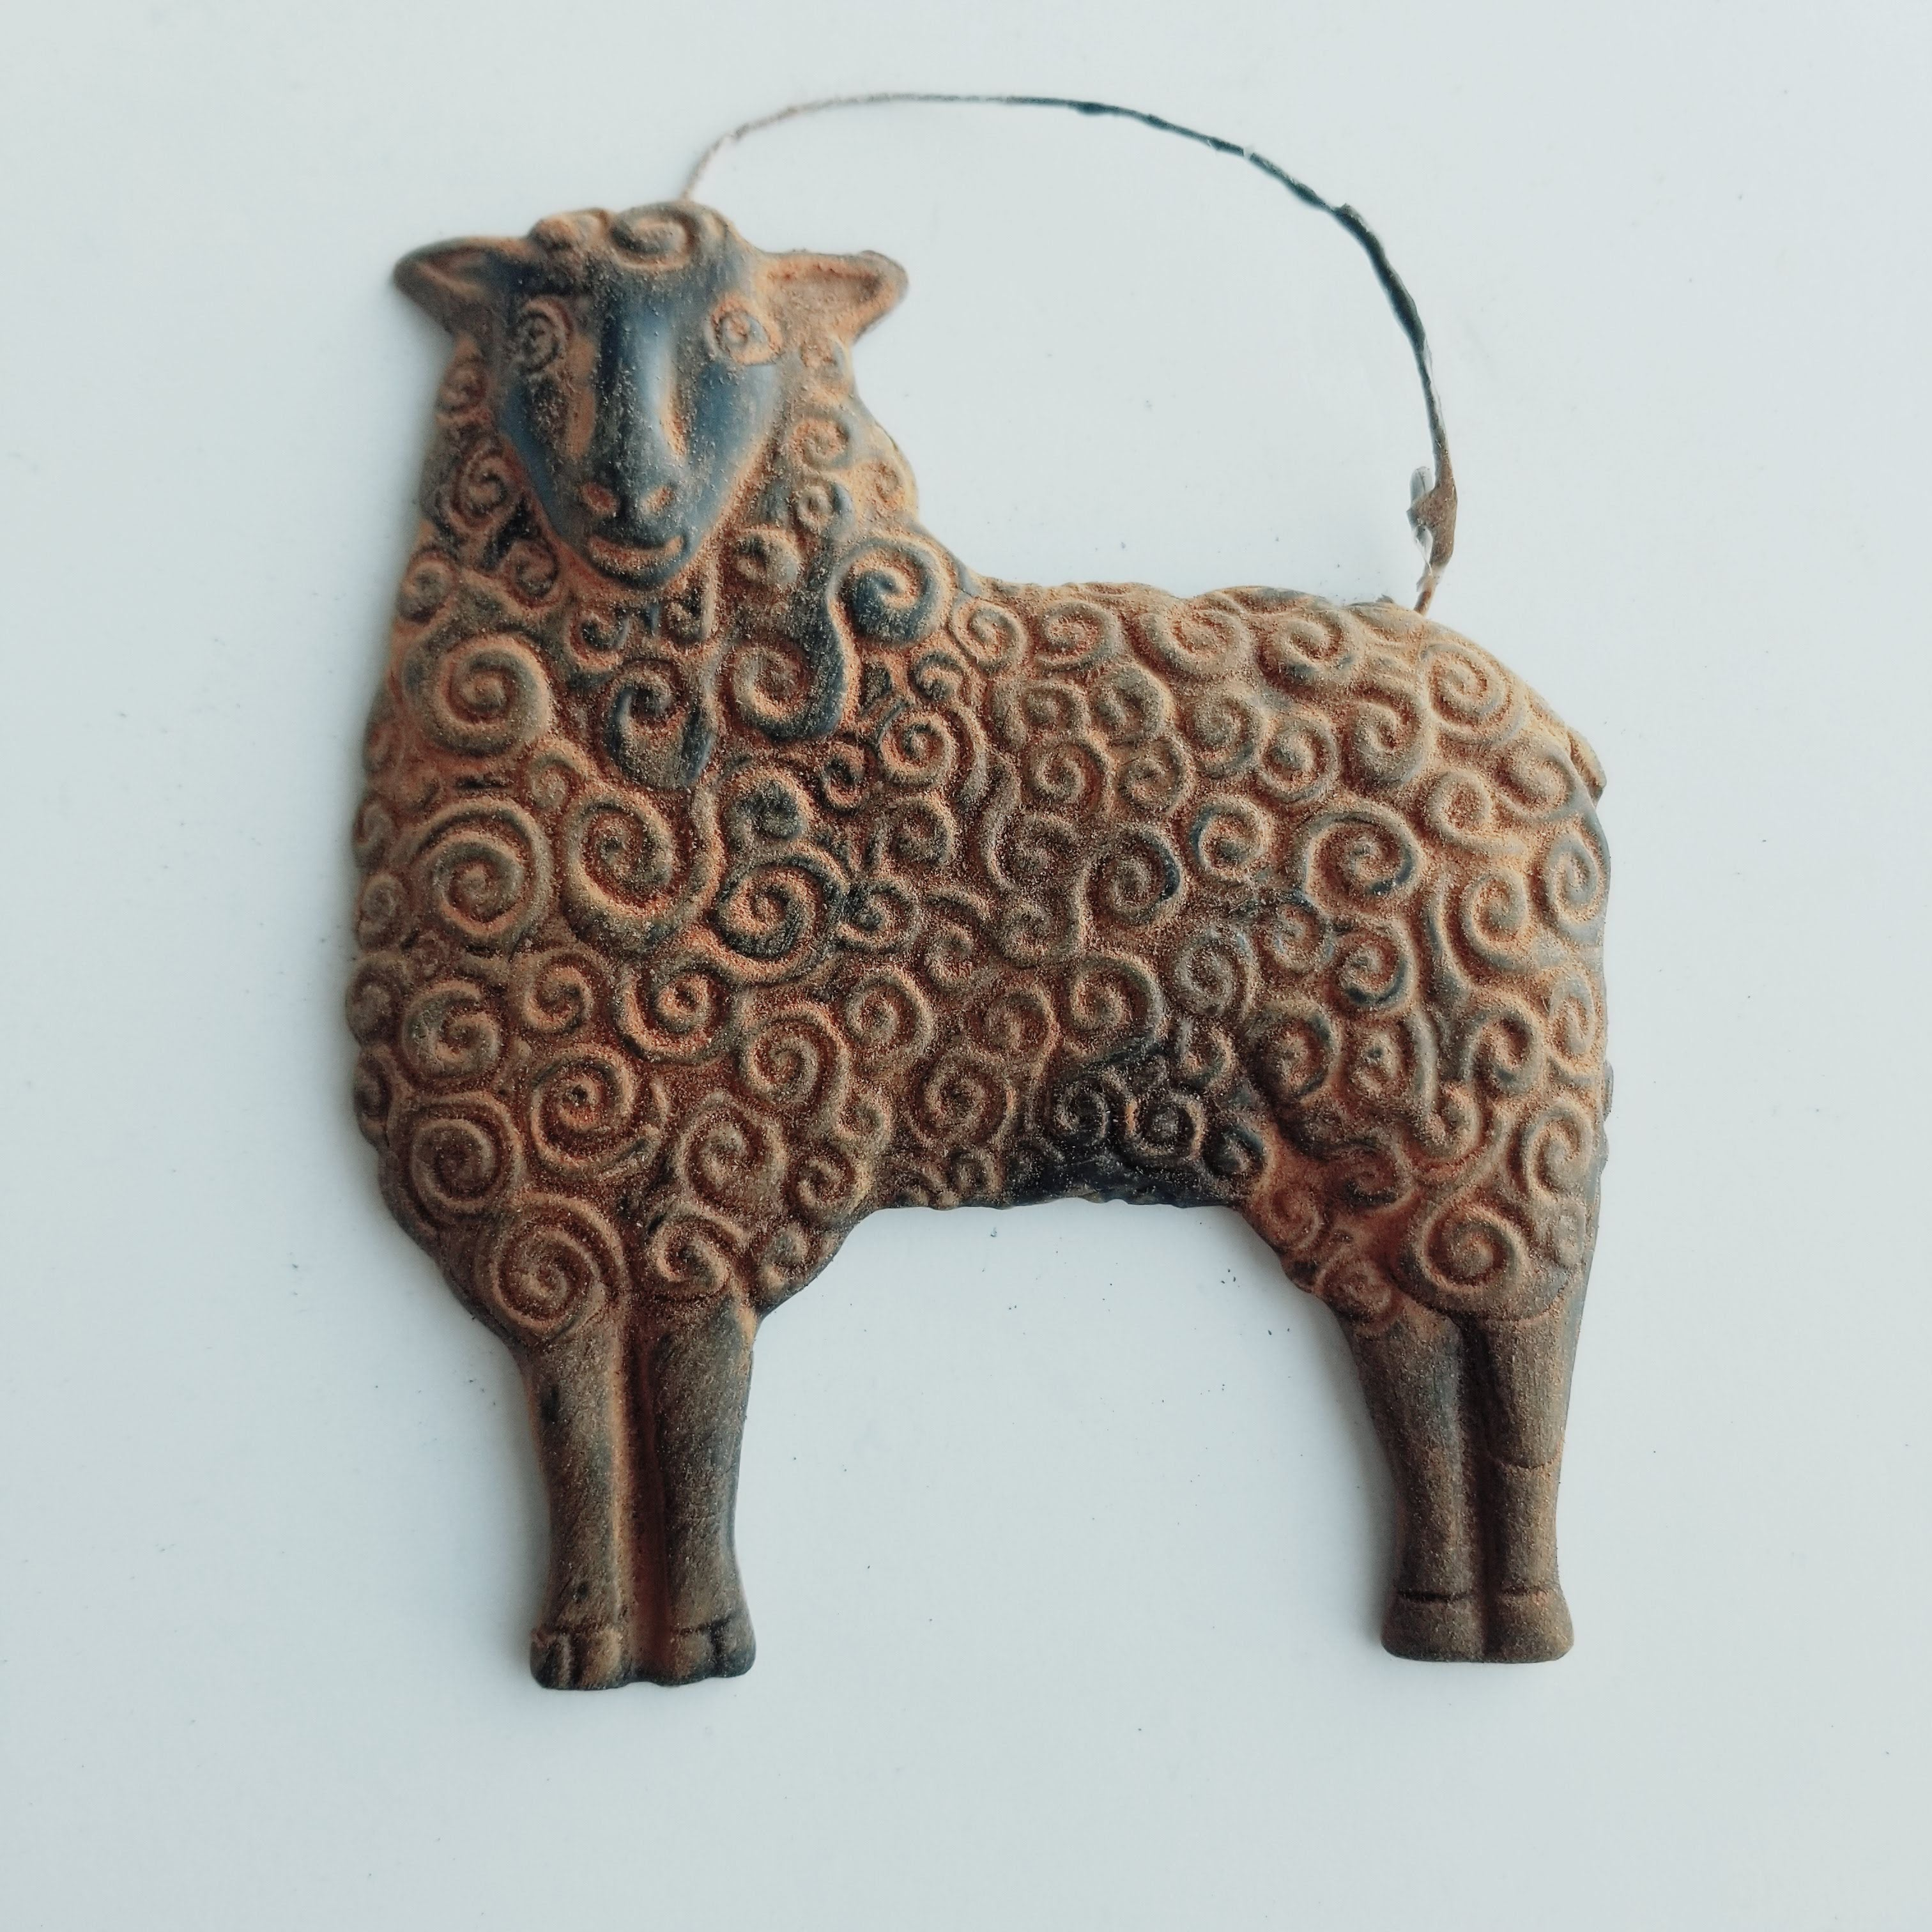 The Lost Sheep- Antiqued Cinnamon Beeswax Ornament